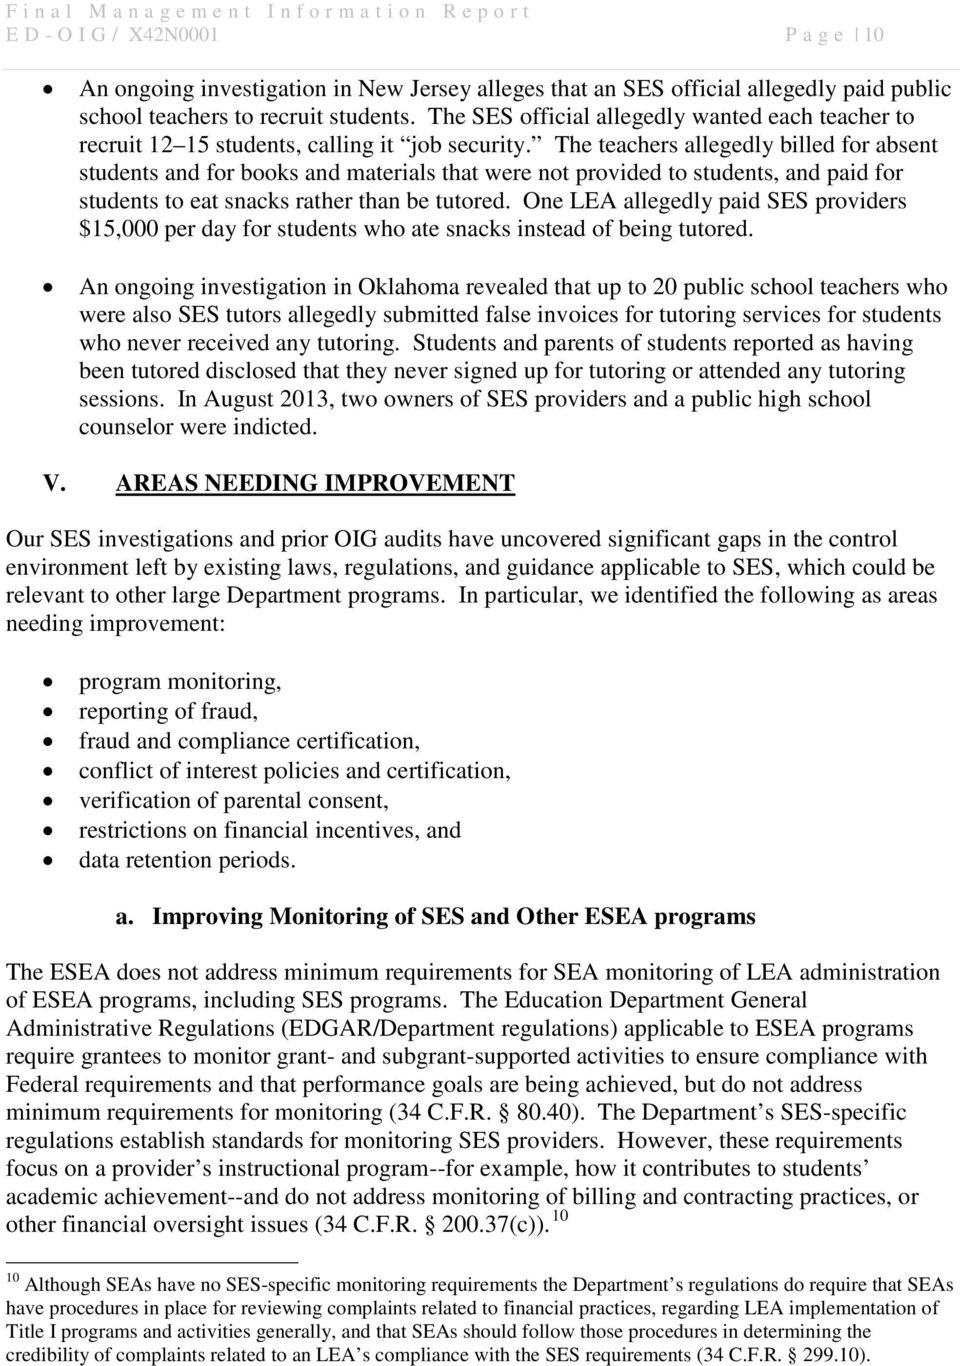 UNITED STATES DEPARTMENT OF EDUCATION OFFICE OF INSPECTOR GENERAL ...